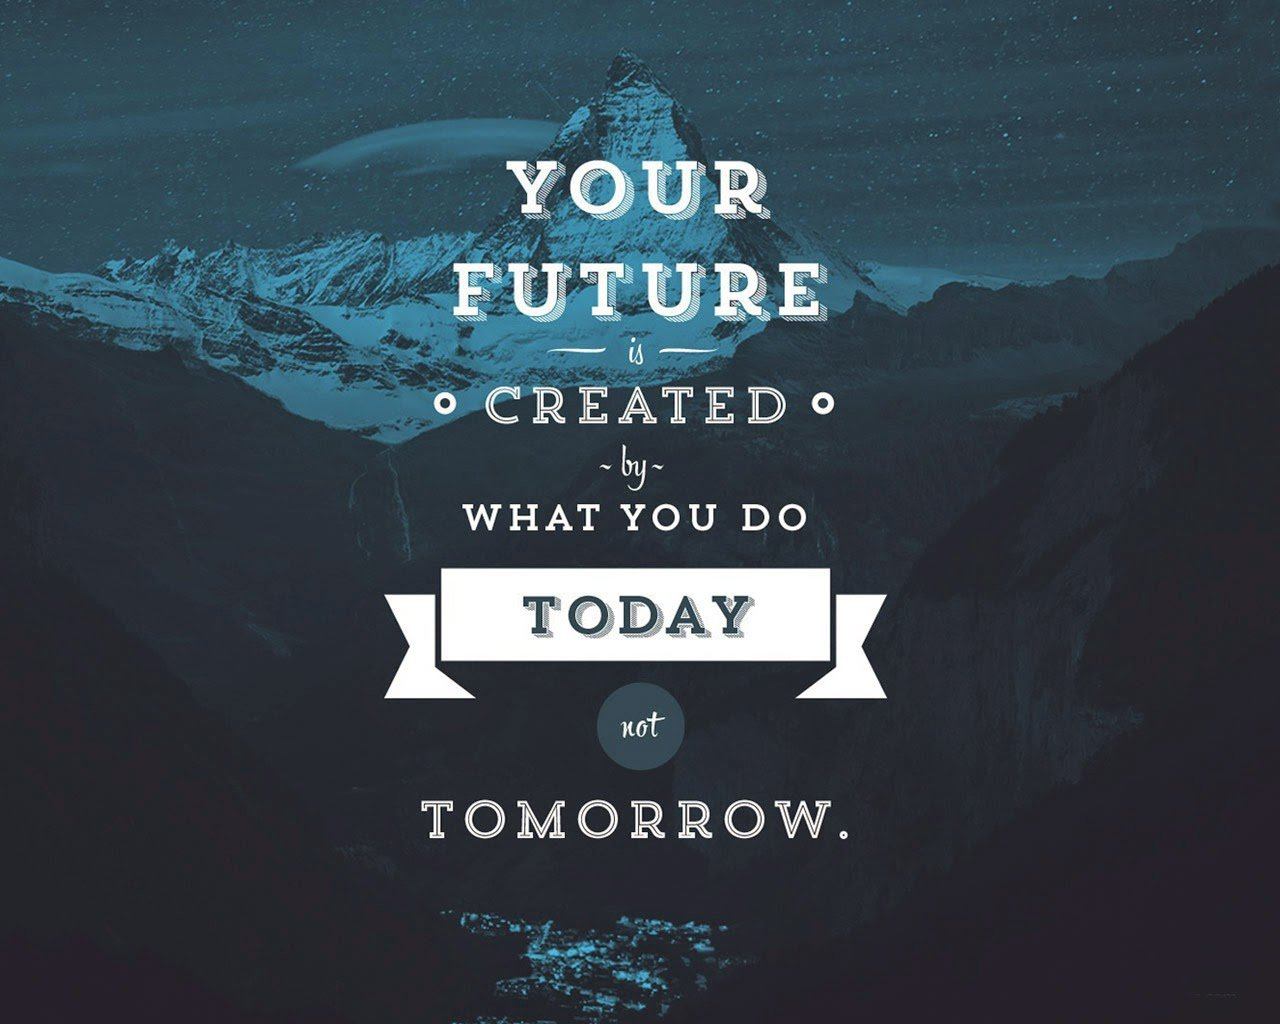 Free download Quotes Inspiration Wallpapers Hd For Iphone ...